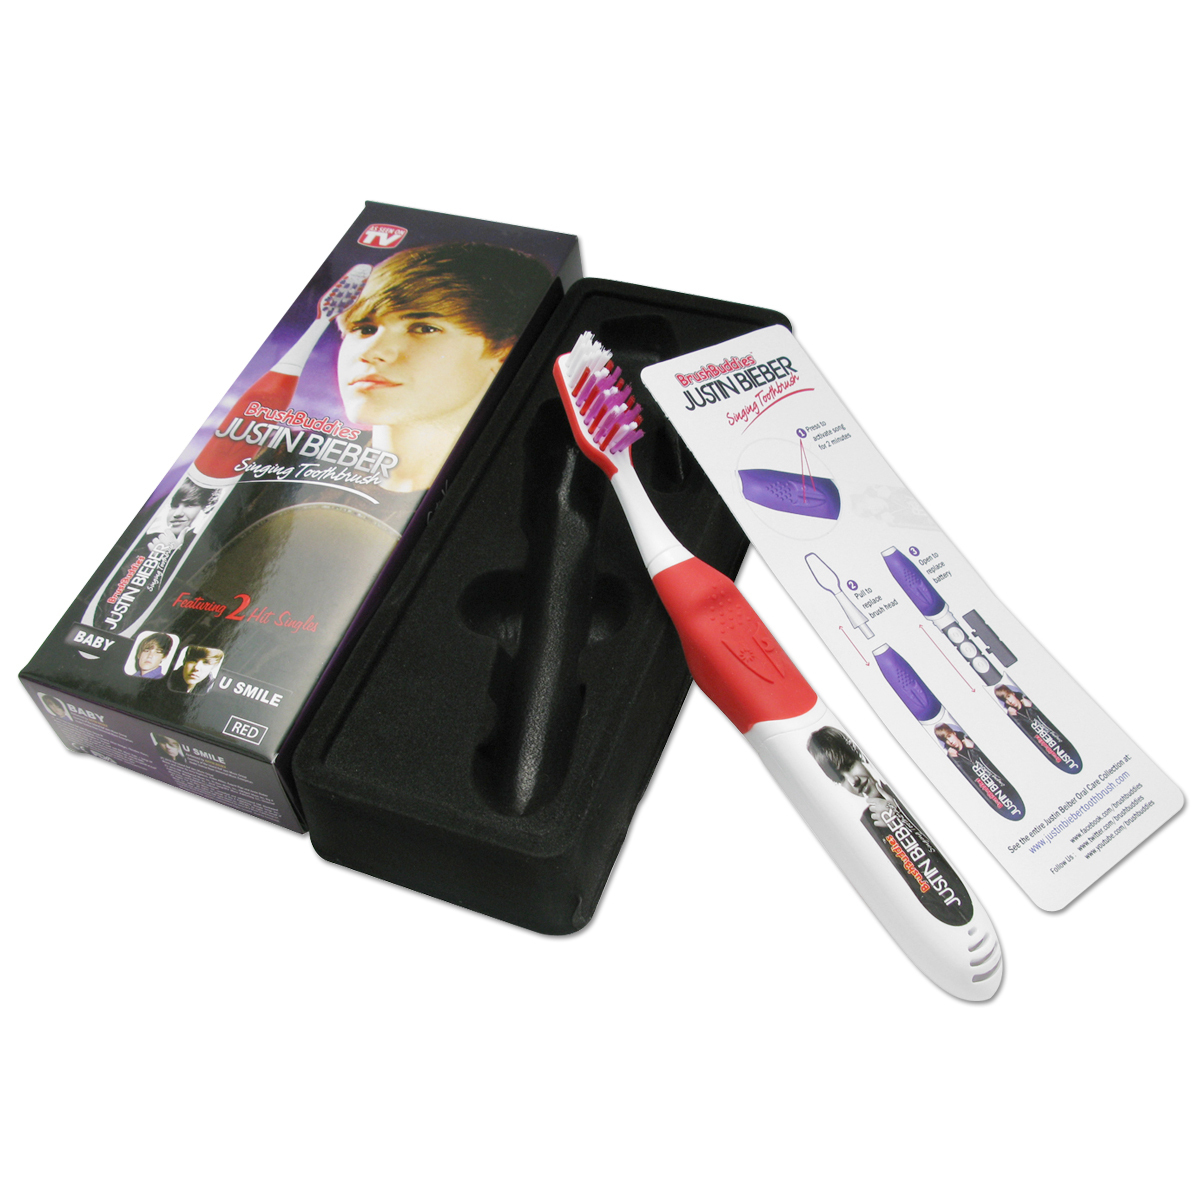 Justin Bieber Singing Toothbrush Featuring Baby and U Smile